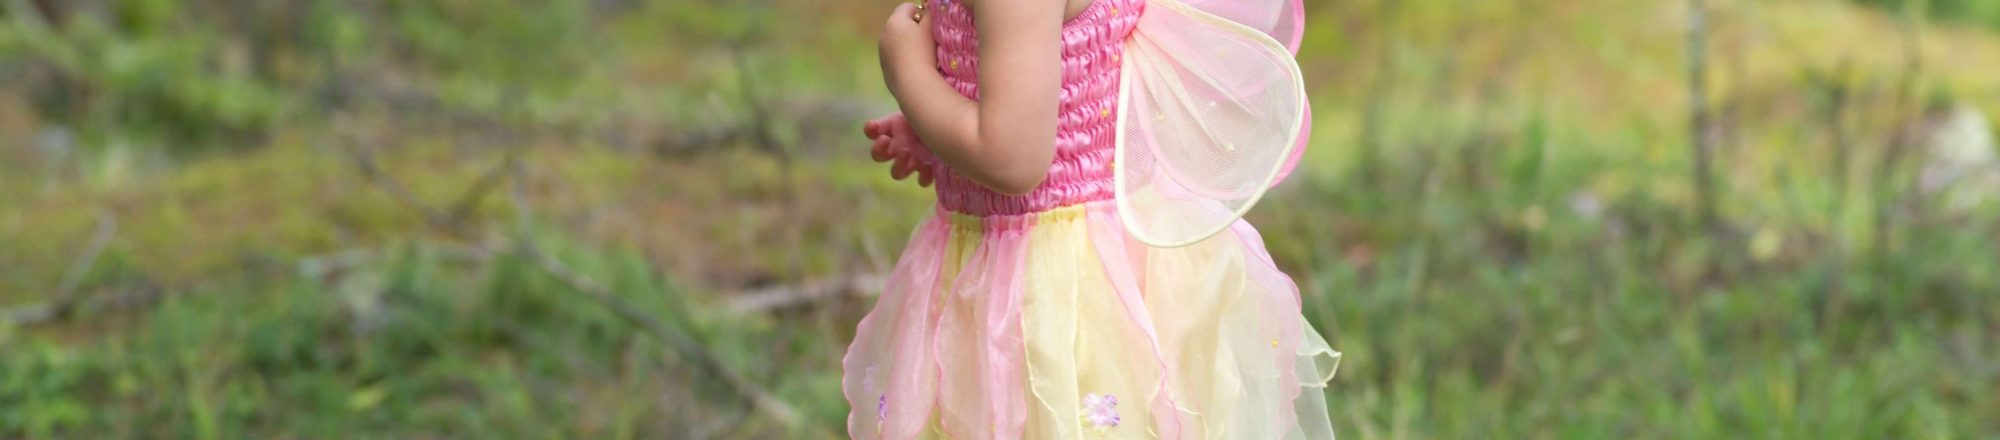 Girl in fairy outfit in forest